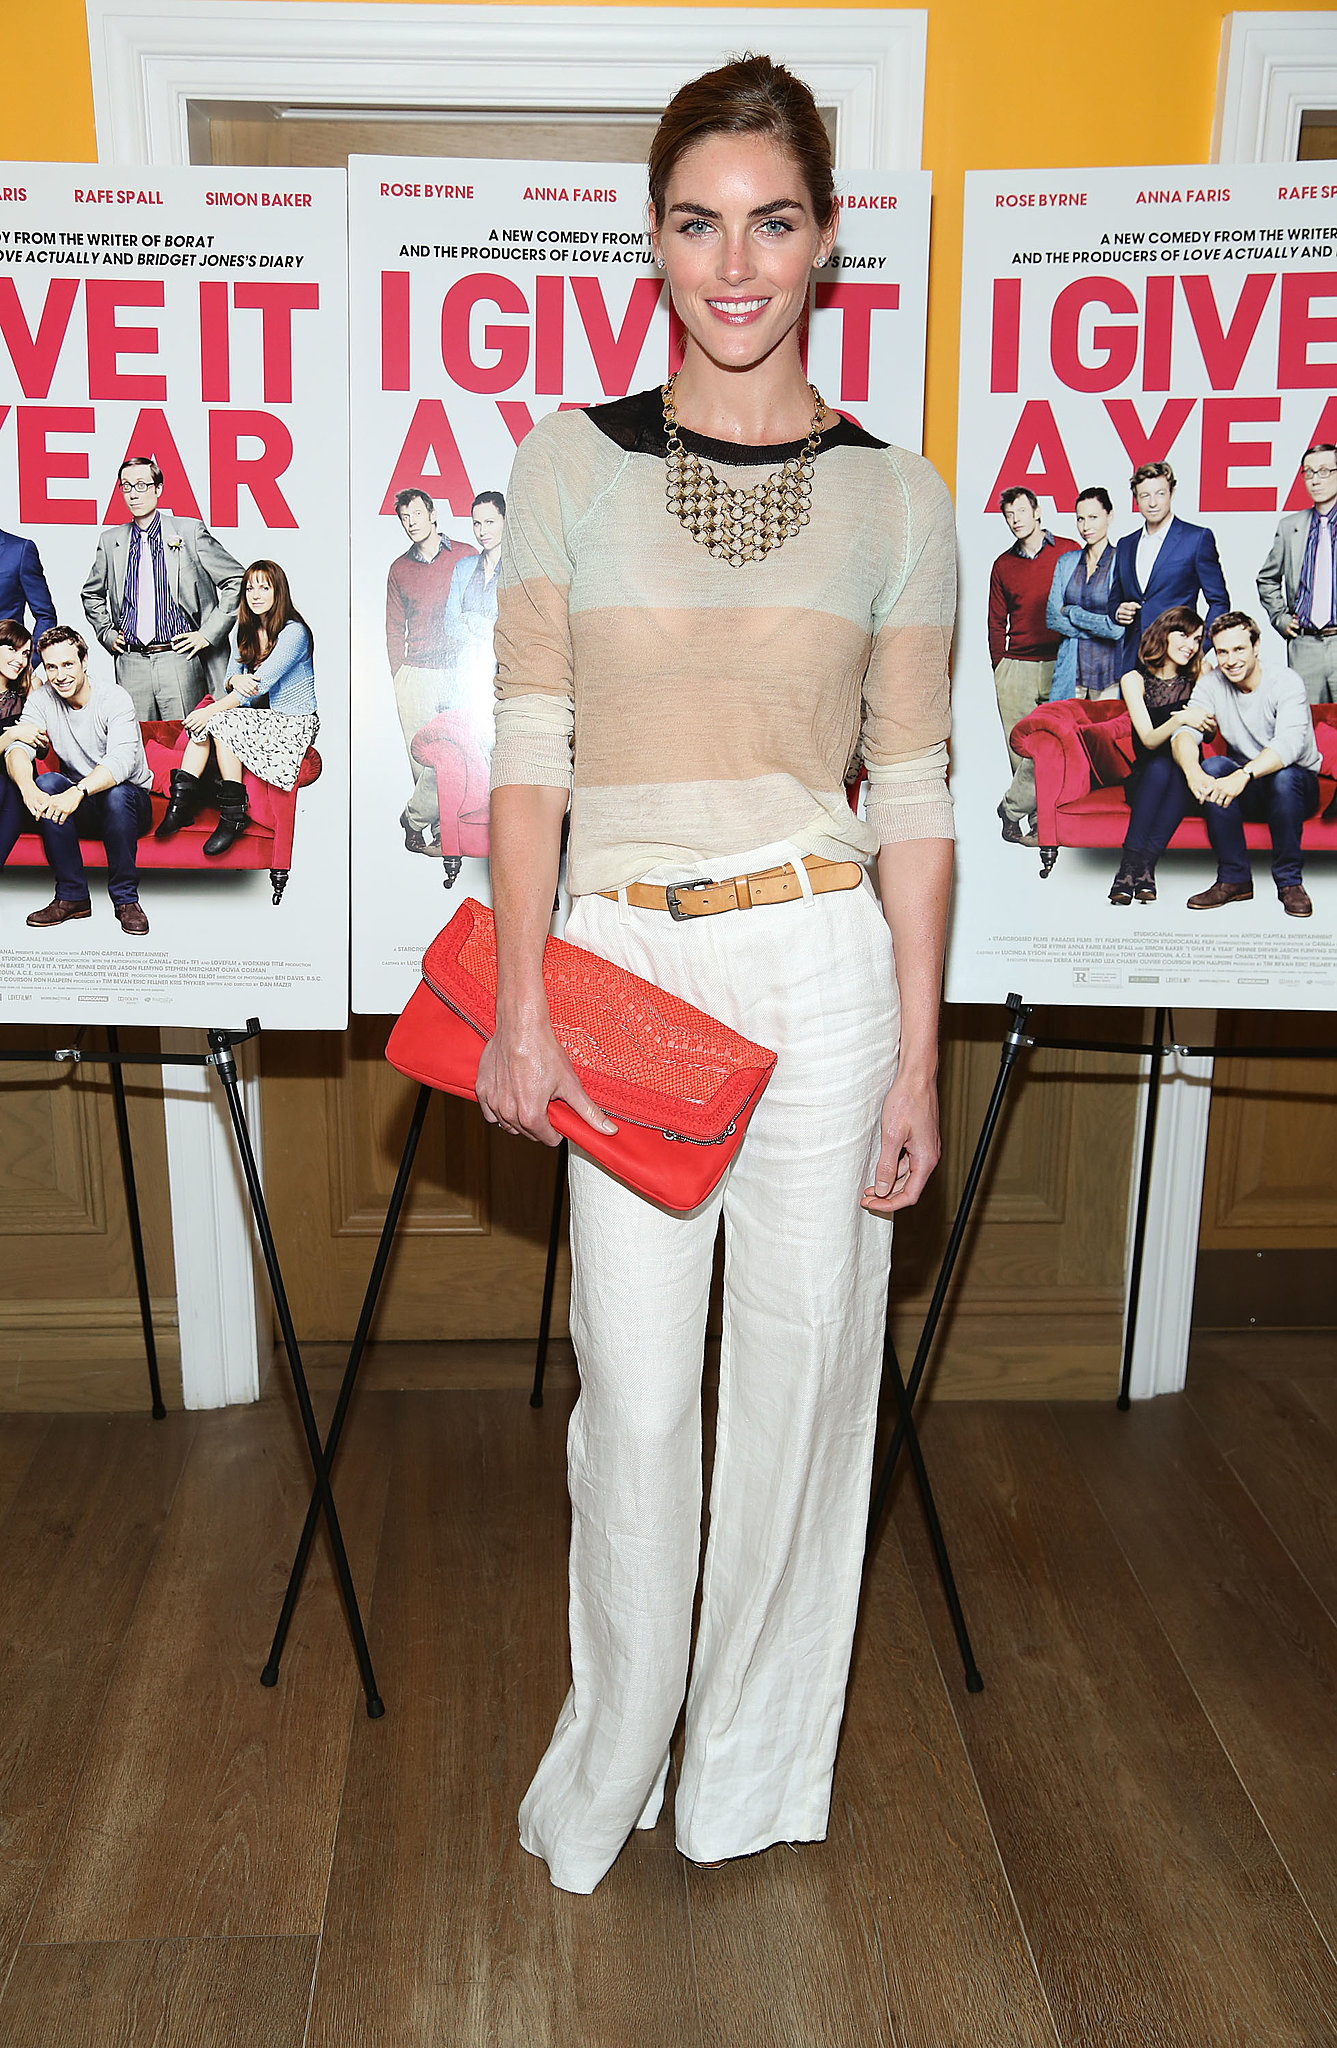 Hilary Rhoda accessorized her crisp separates for maximum impact at the I Give It a Year screening.